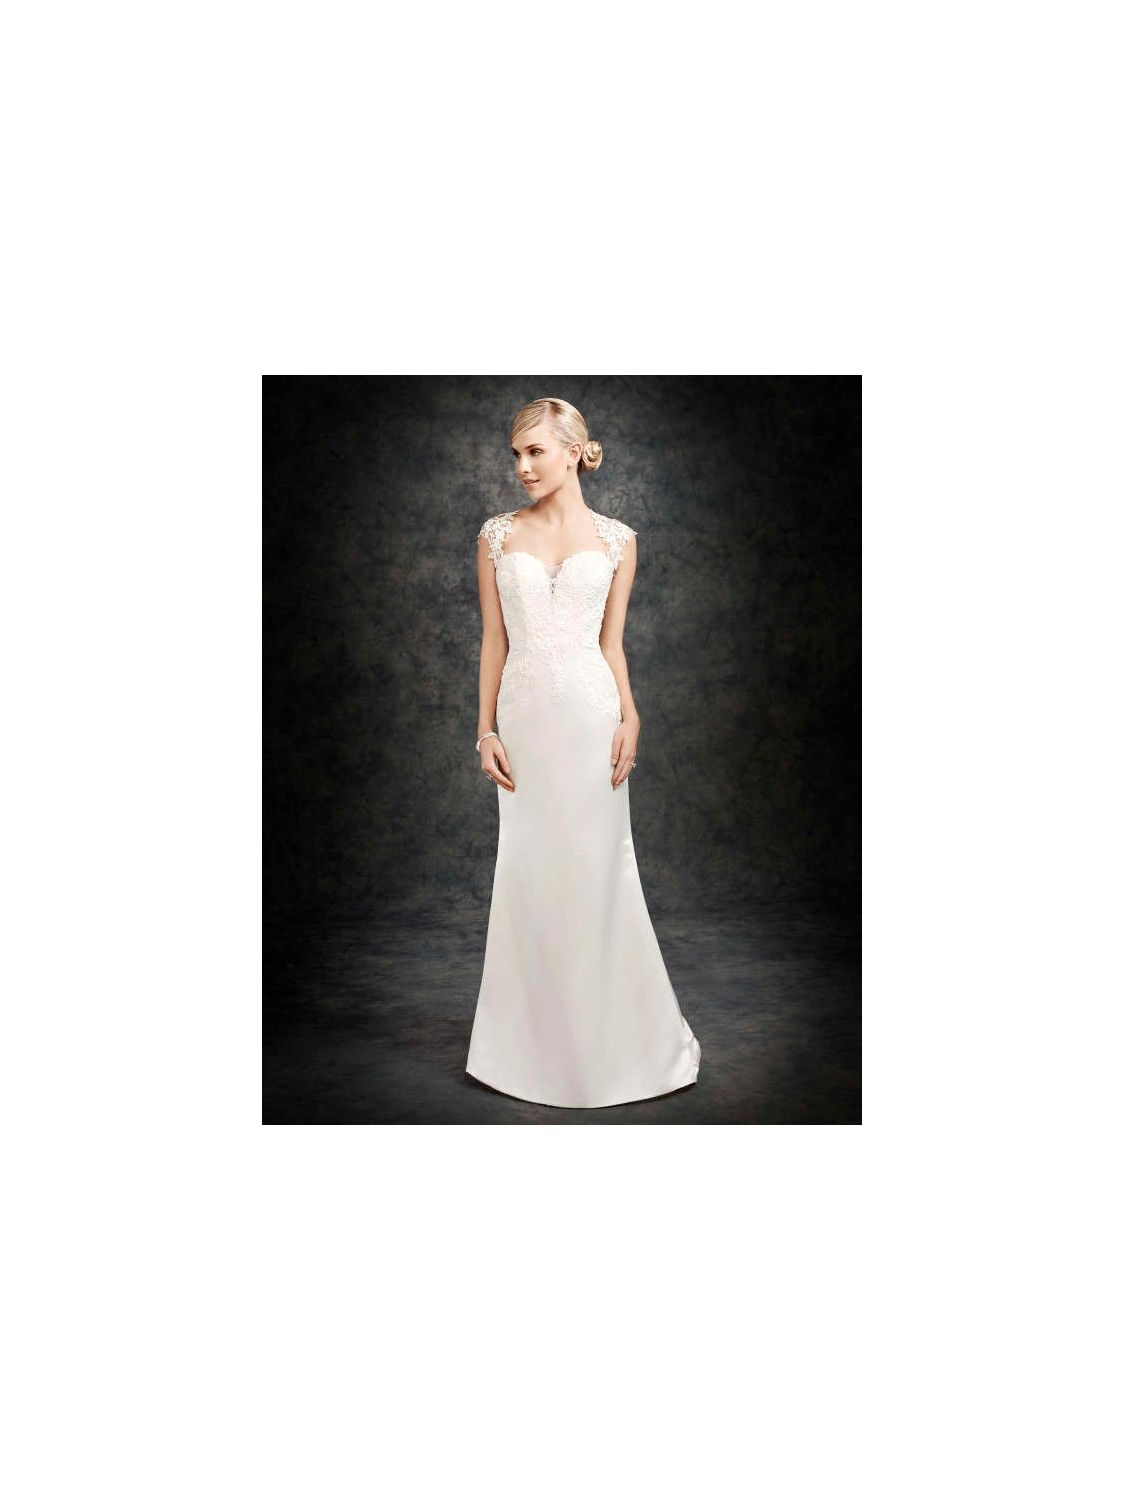 Ella rosa wedding dress style nobe wedding dress for dana